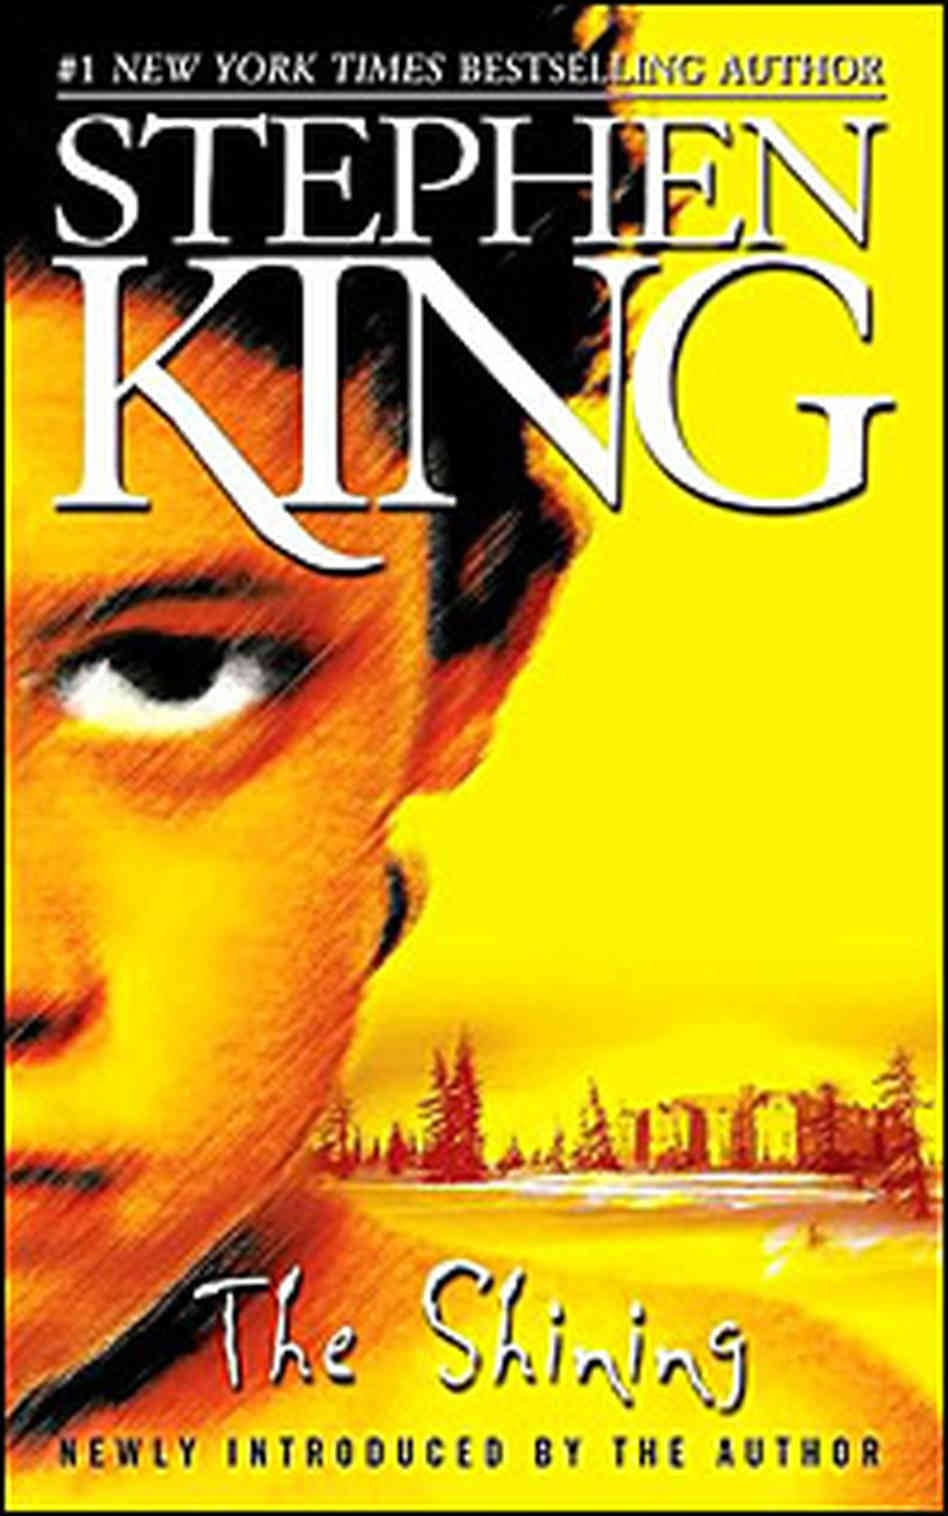 Colorado: The Shining by Stephen King